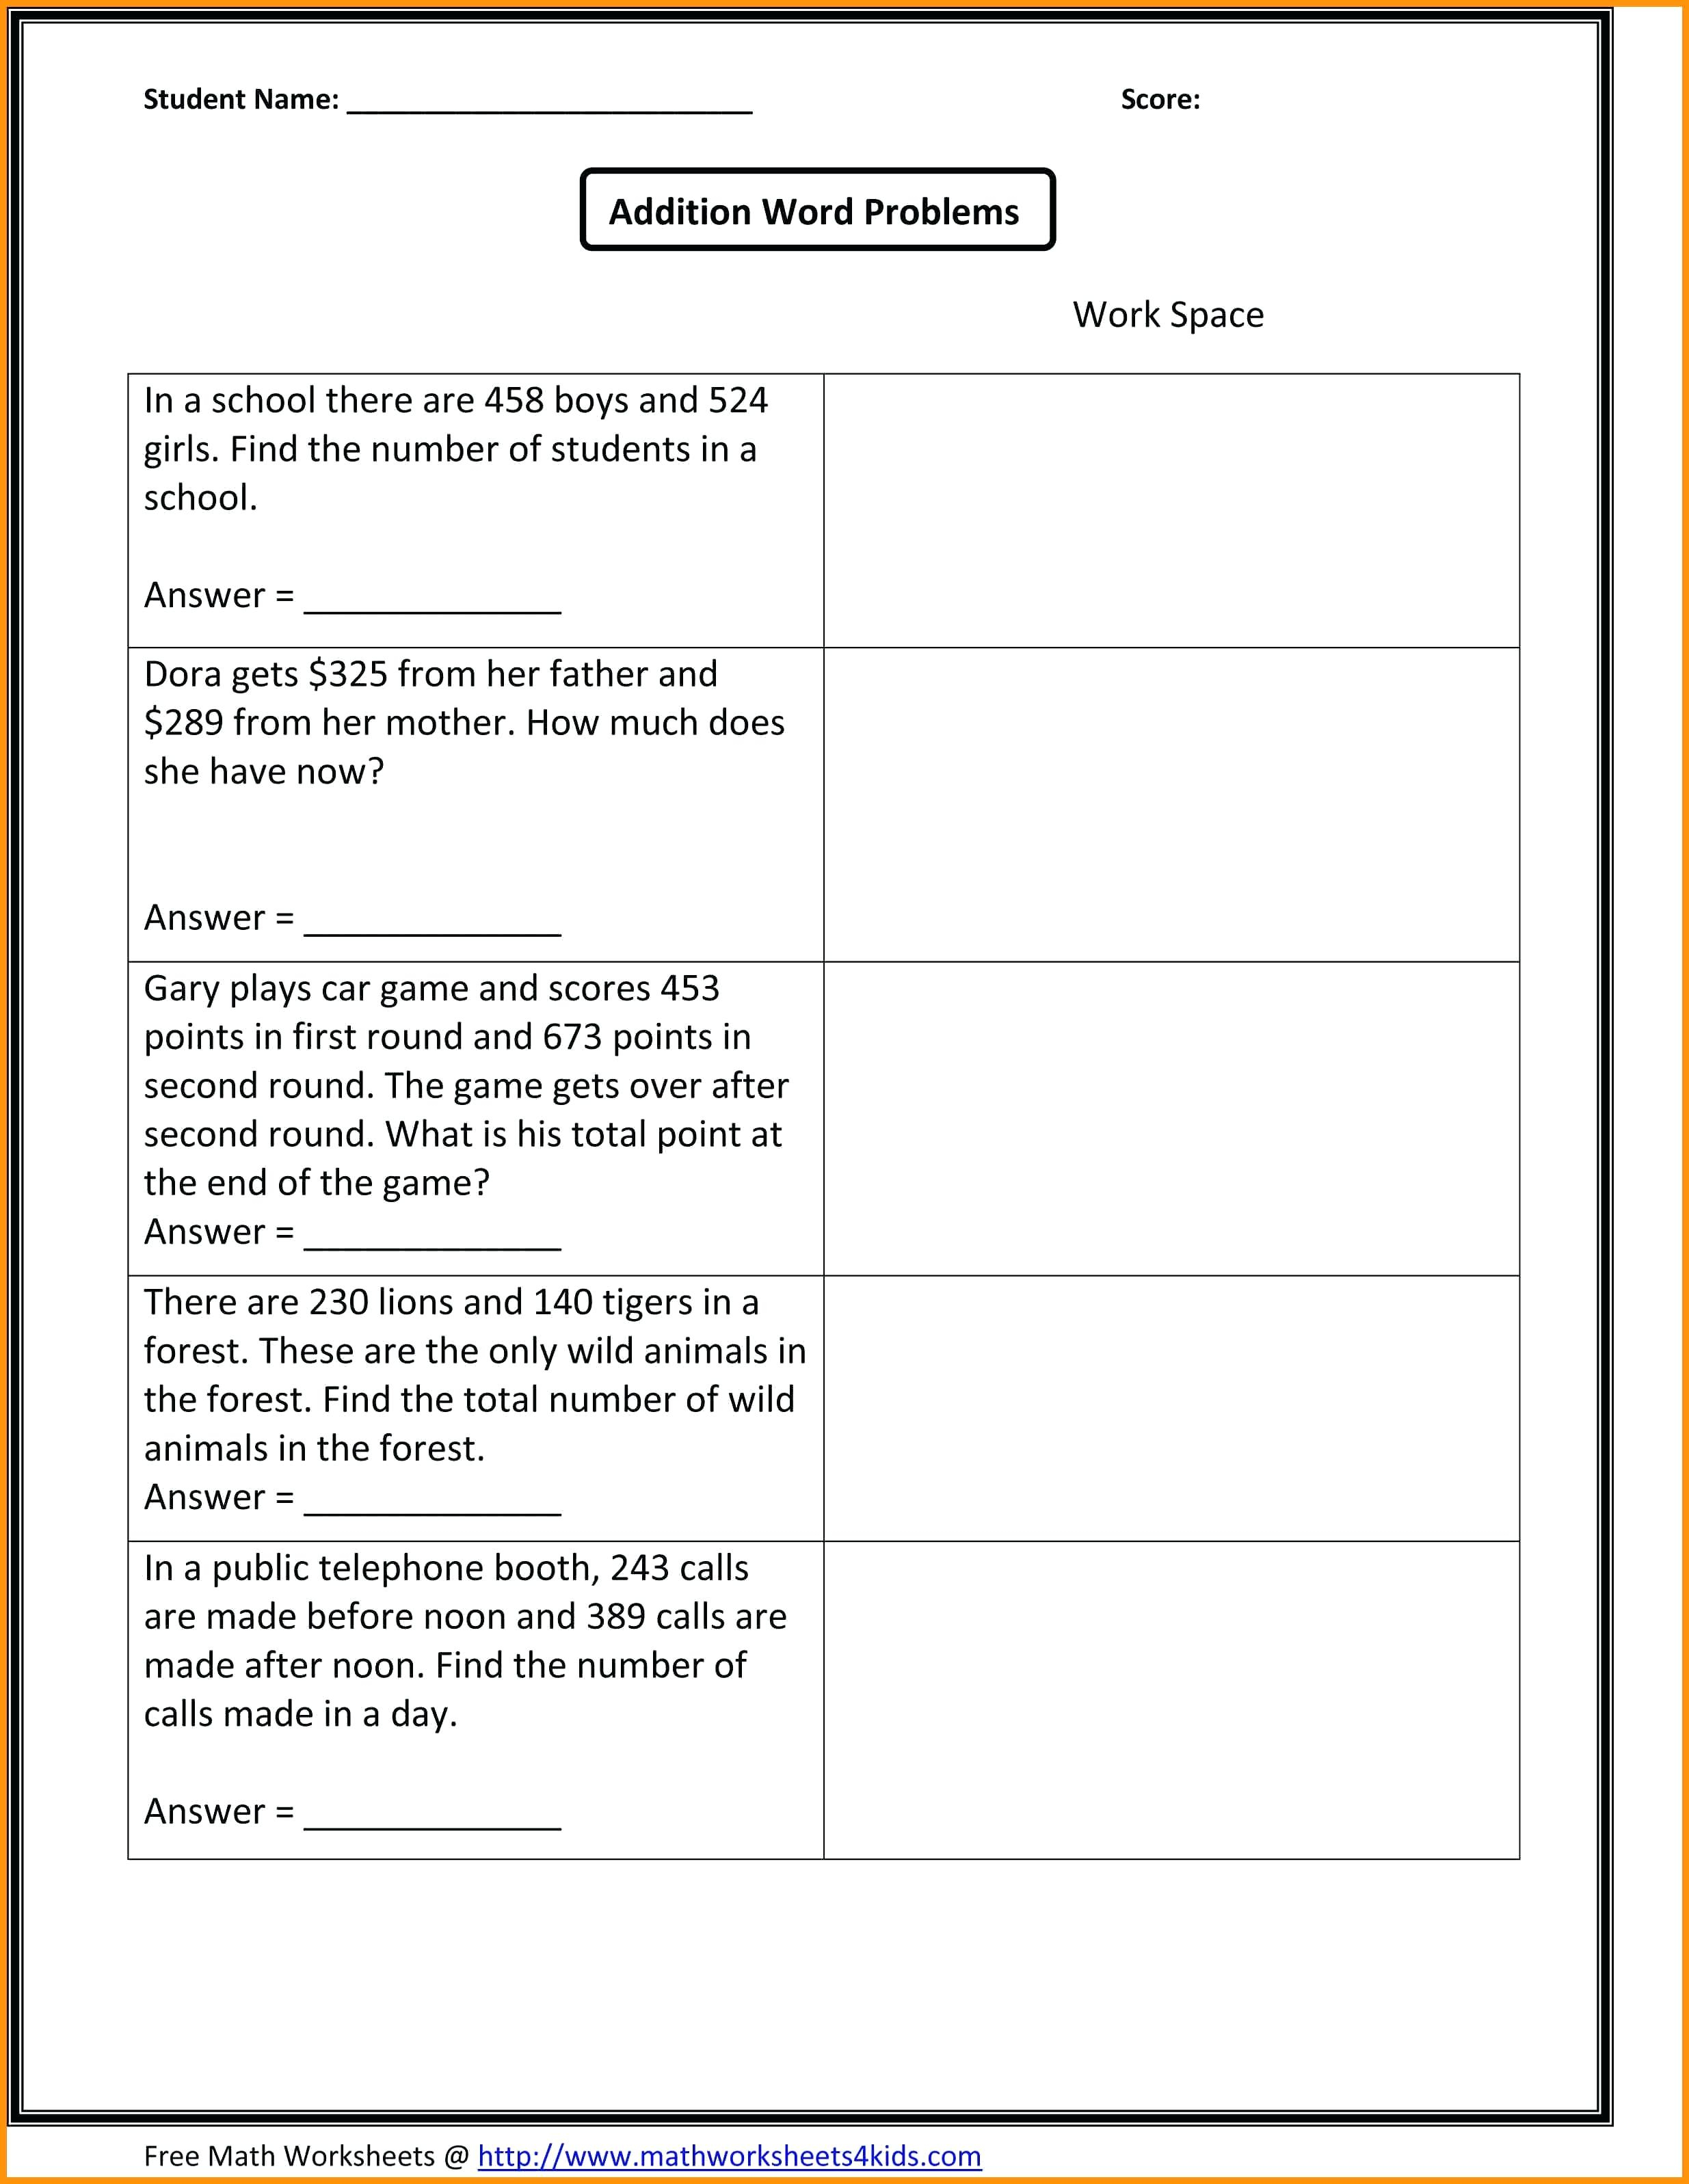 2Nd Grade Math Word Problems Grade Math Worksheets Money Grade Math - Free Printable Math Word Problems For 2Nd Grade